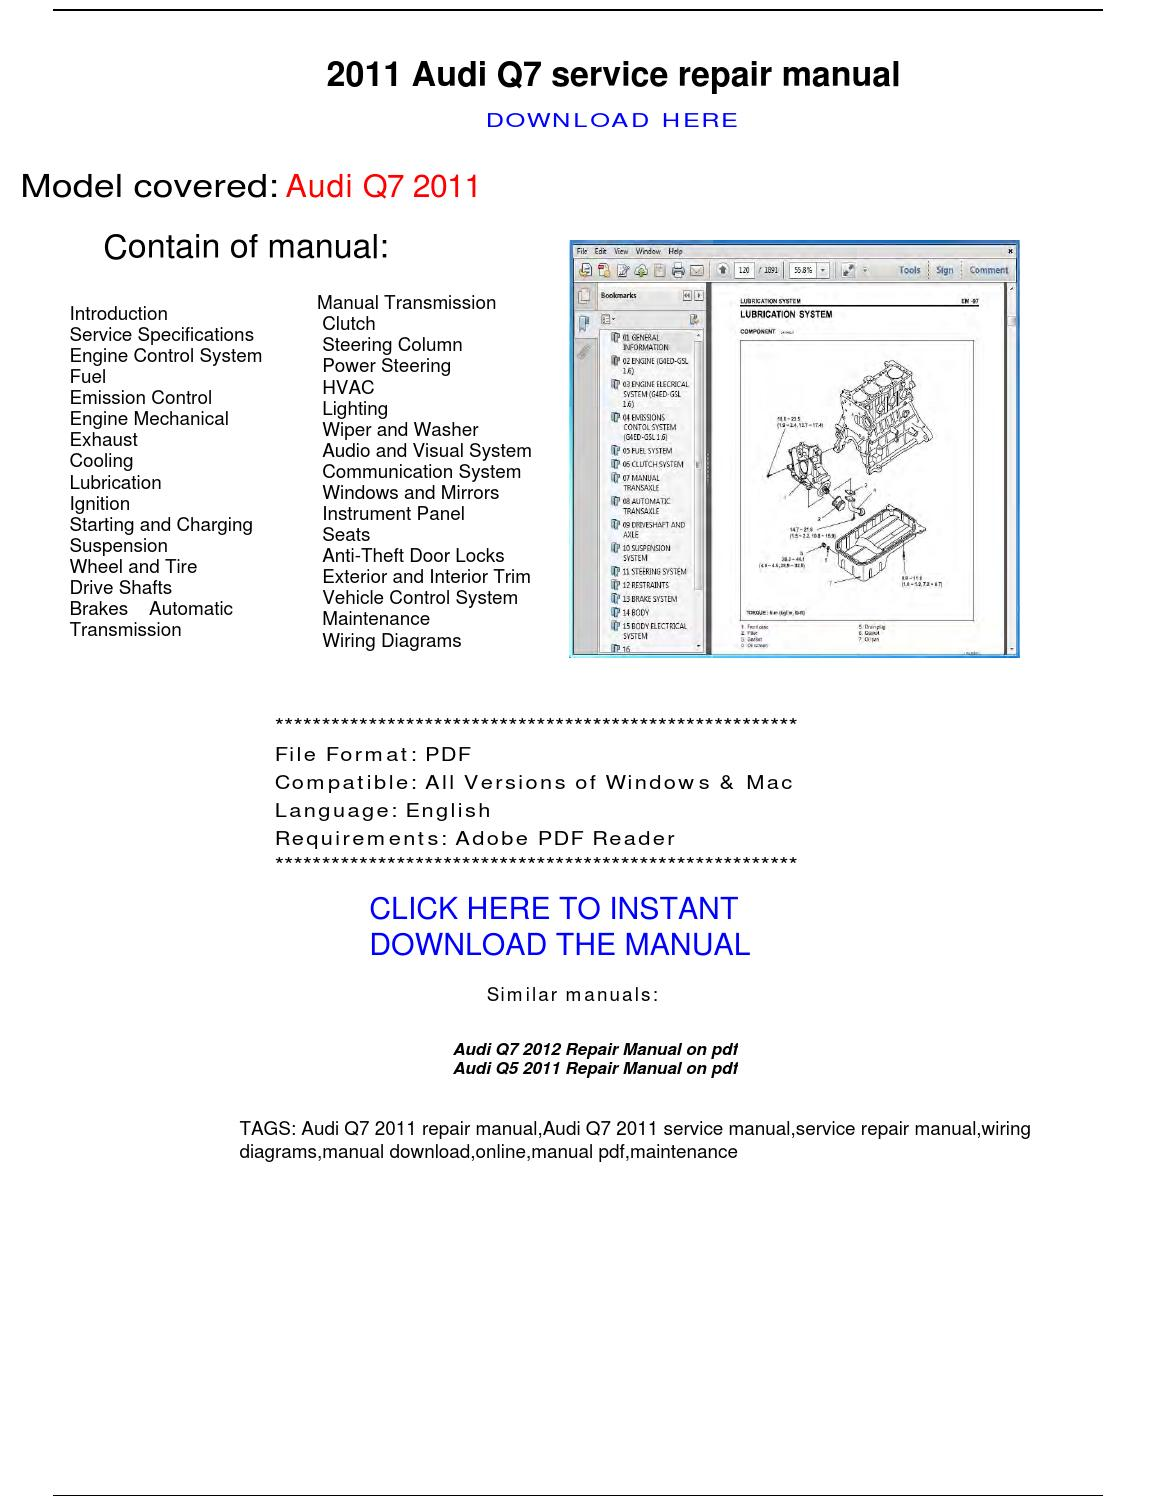 Audi Q7 2011 Repair Manual By Repairmanualpdf